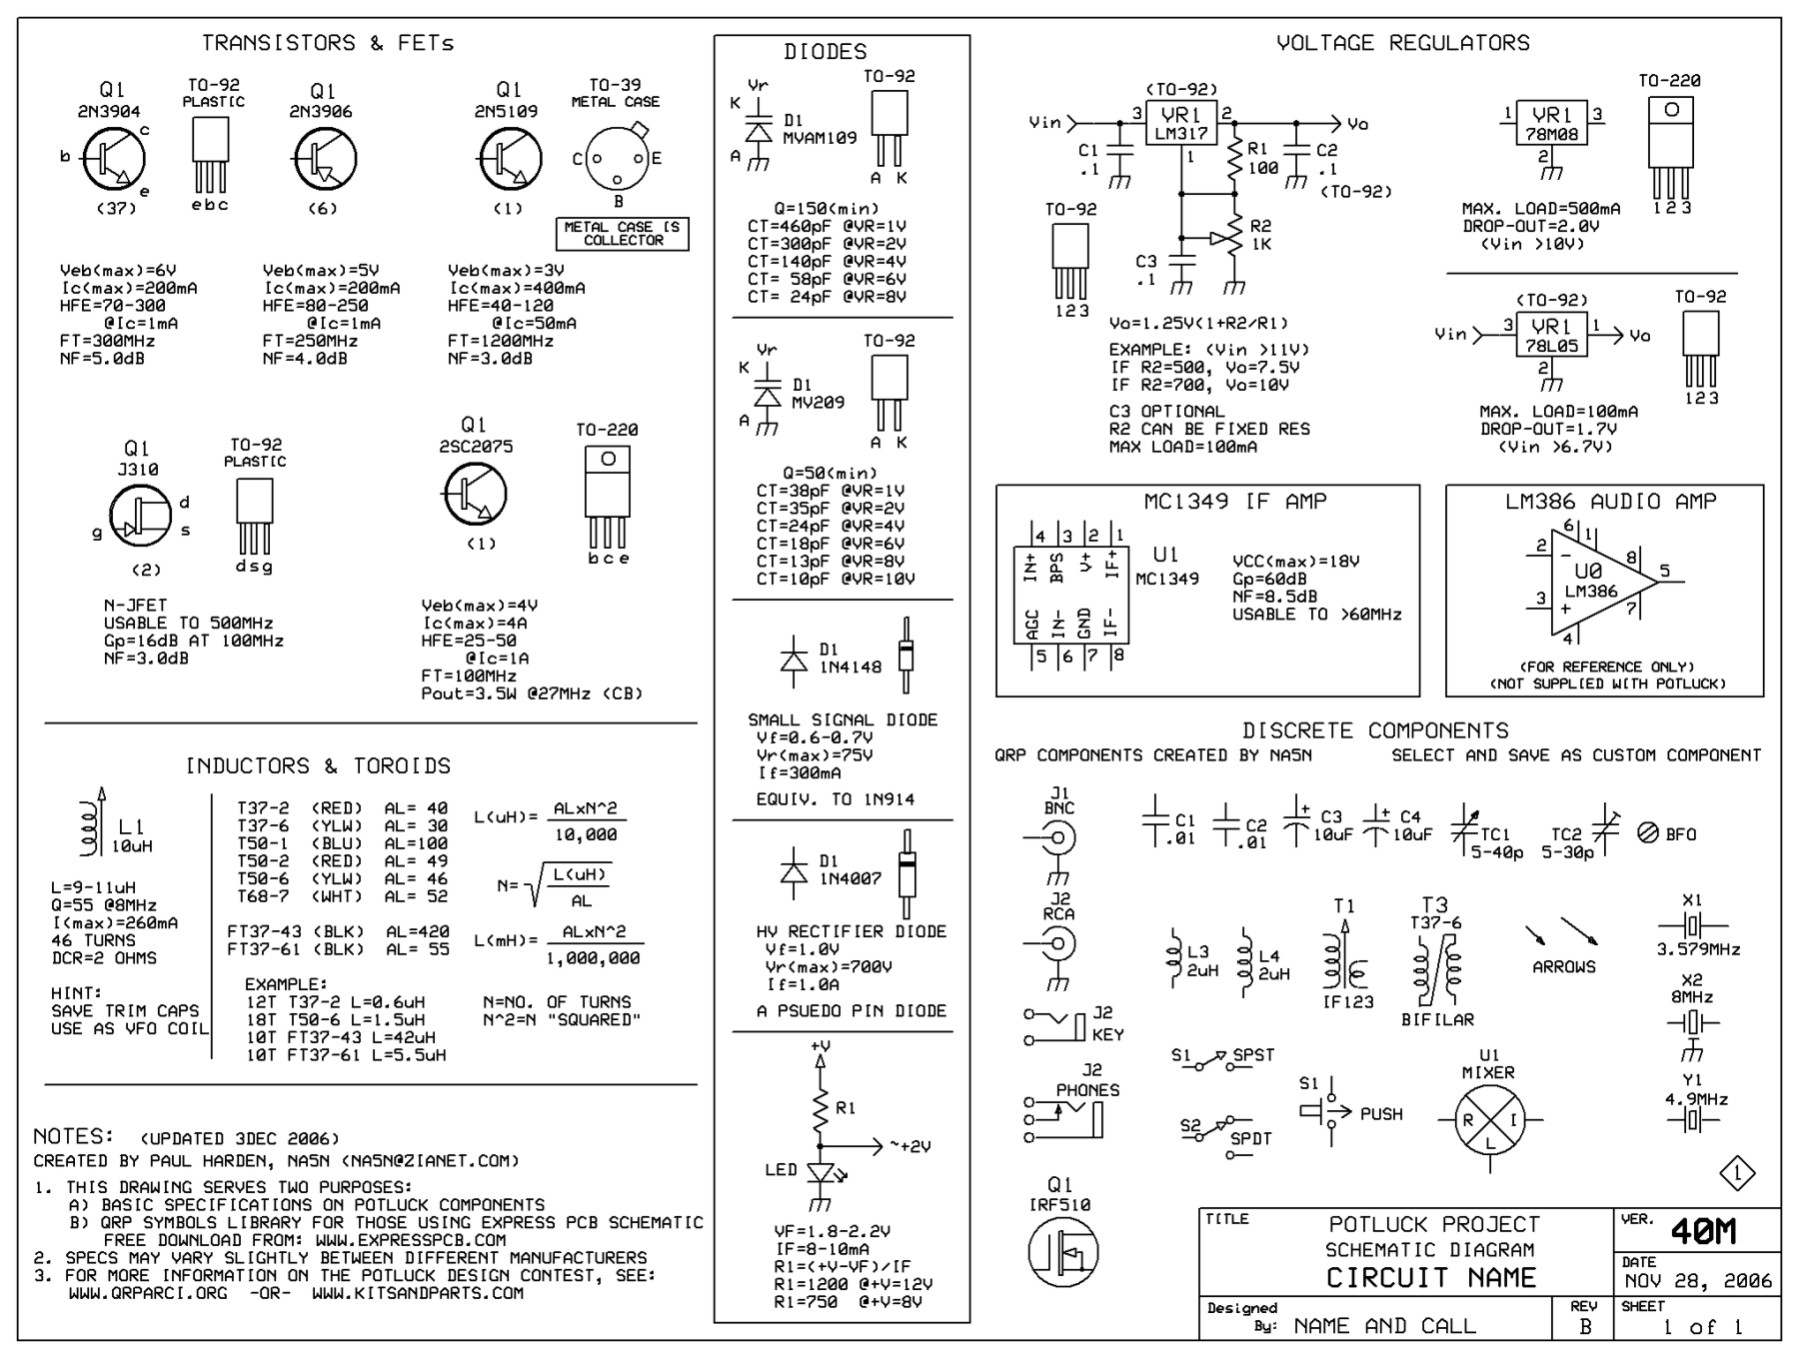 Kenworth t800 hvac wiring diagram gandul 45 77 79 119 on kenworth t600 hvac wiring diagrams Kenworth T800 Wiring Diagram Symbols Wiring Diagram for W900